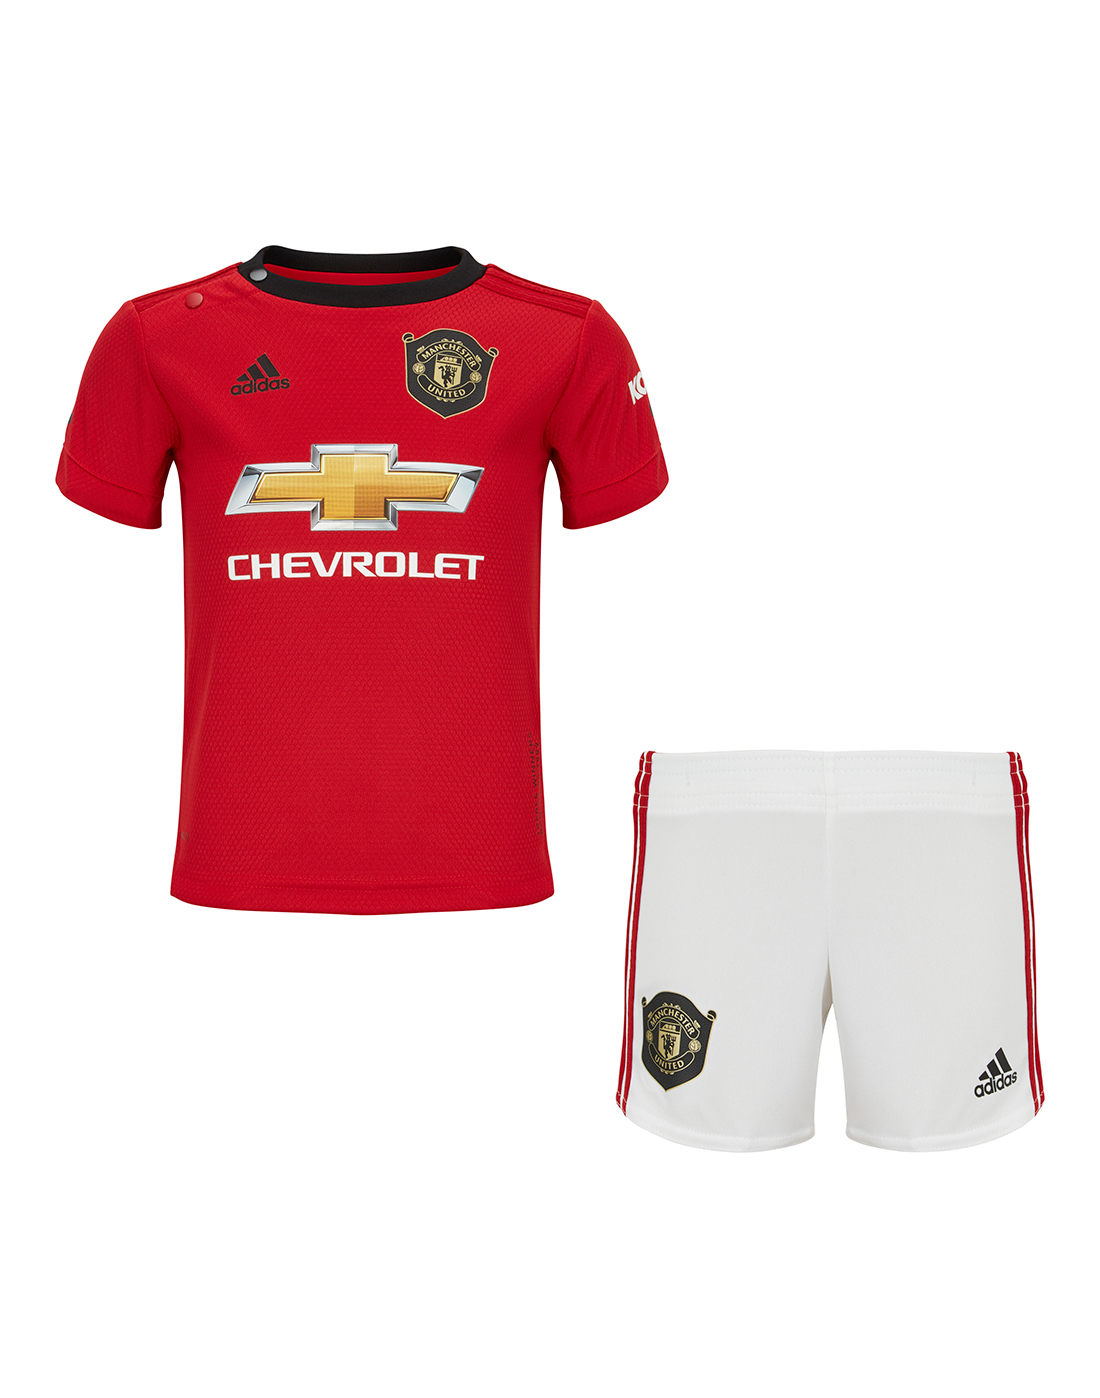 premium selection a558f c36f3 Infants Man Utd 19/20 Home Kit